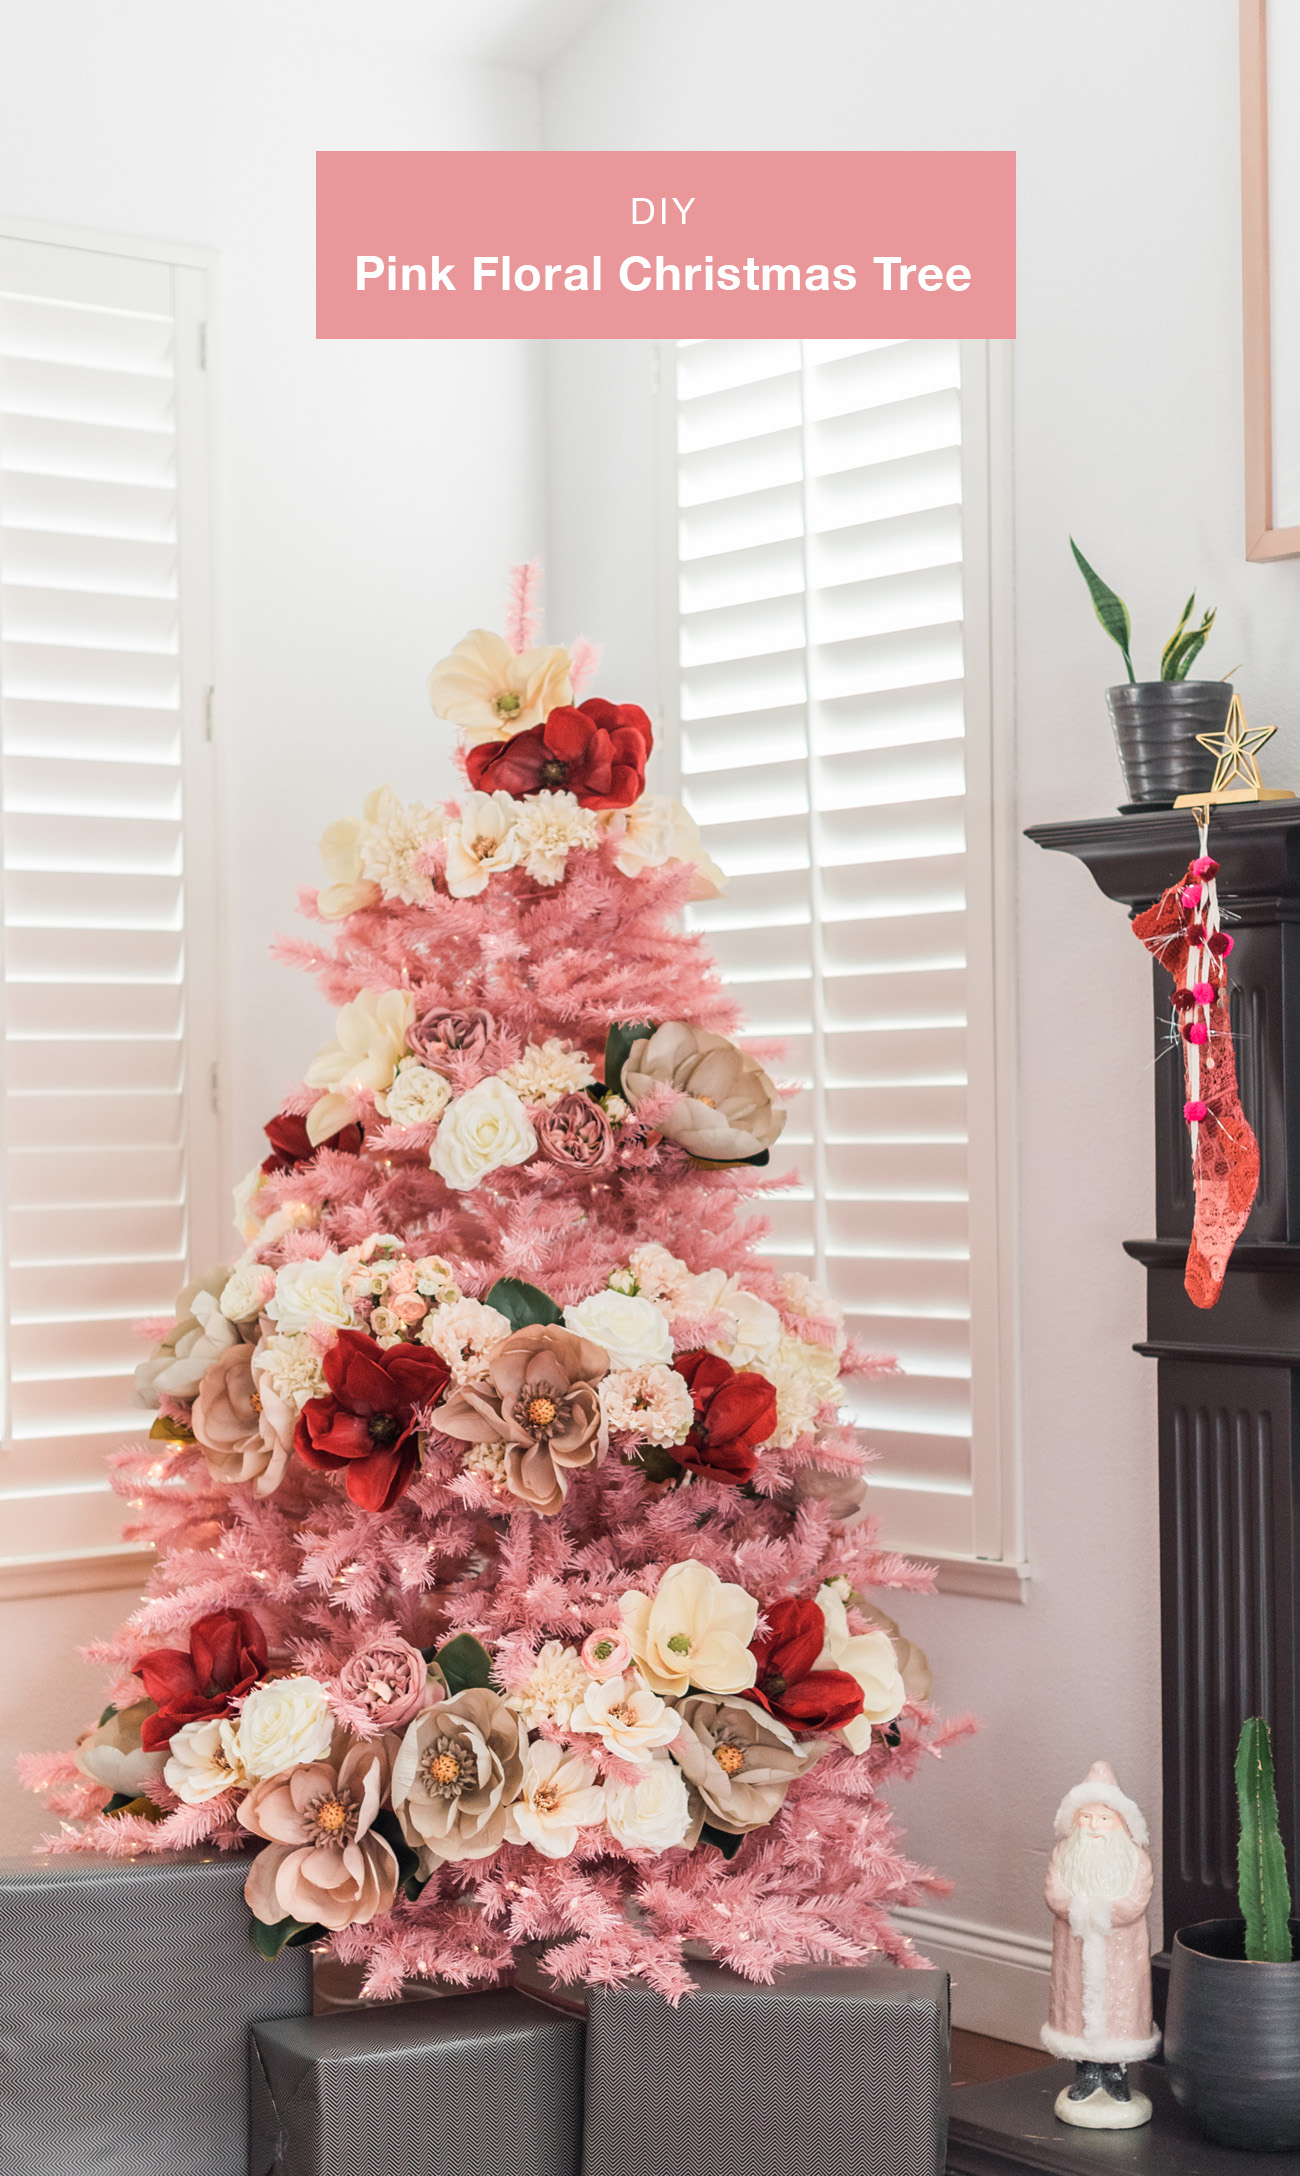 How to Make Your Own Pink Floral Christmas Tree - Green Wedding Shoes